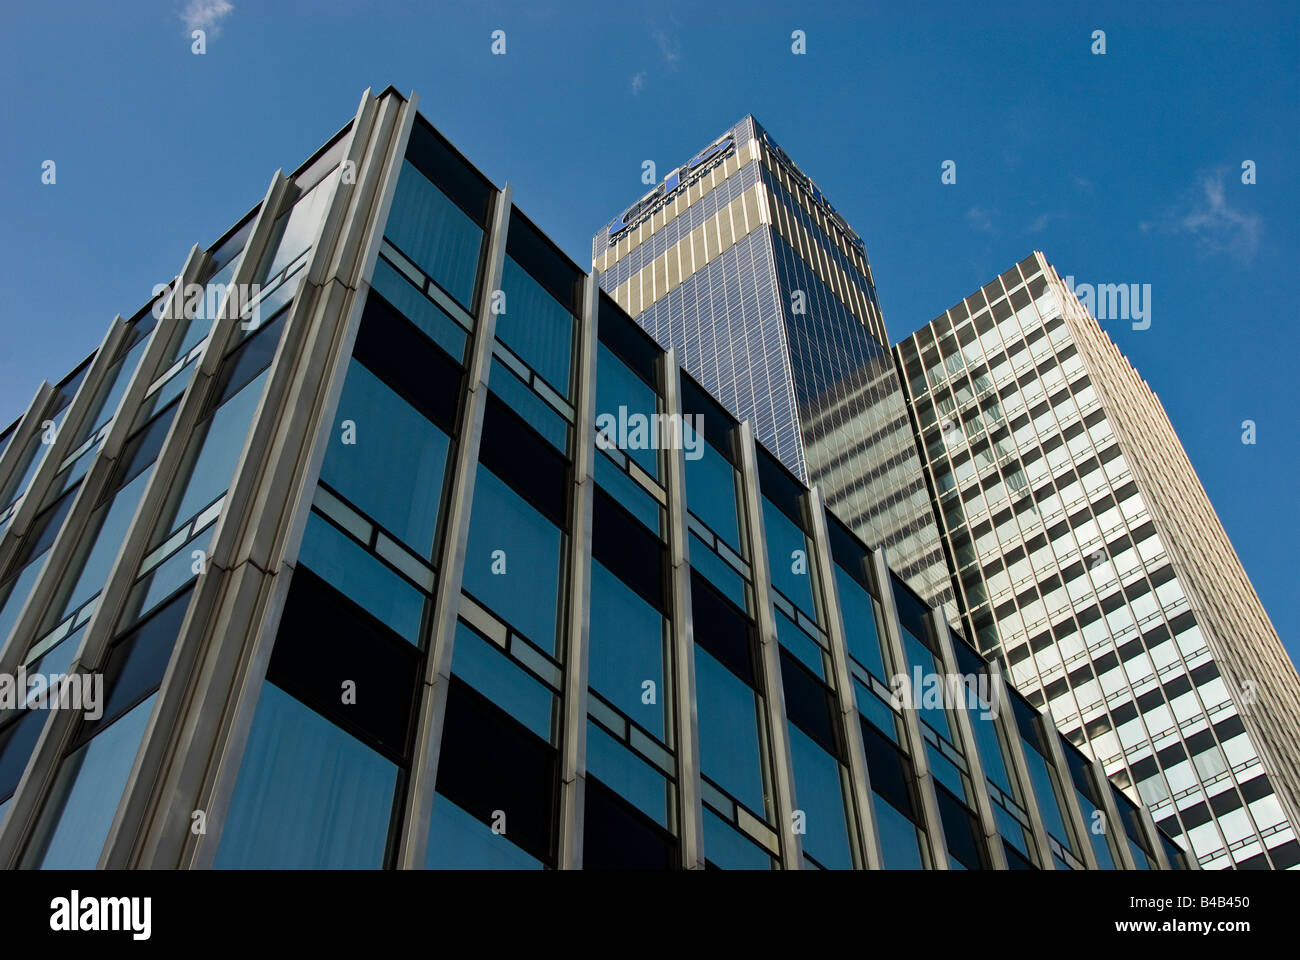 CIS Building Manchester. - Stock Image